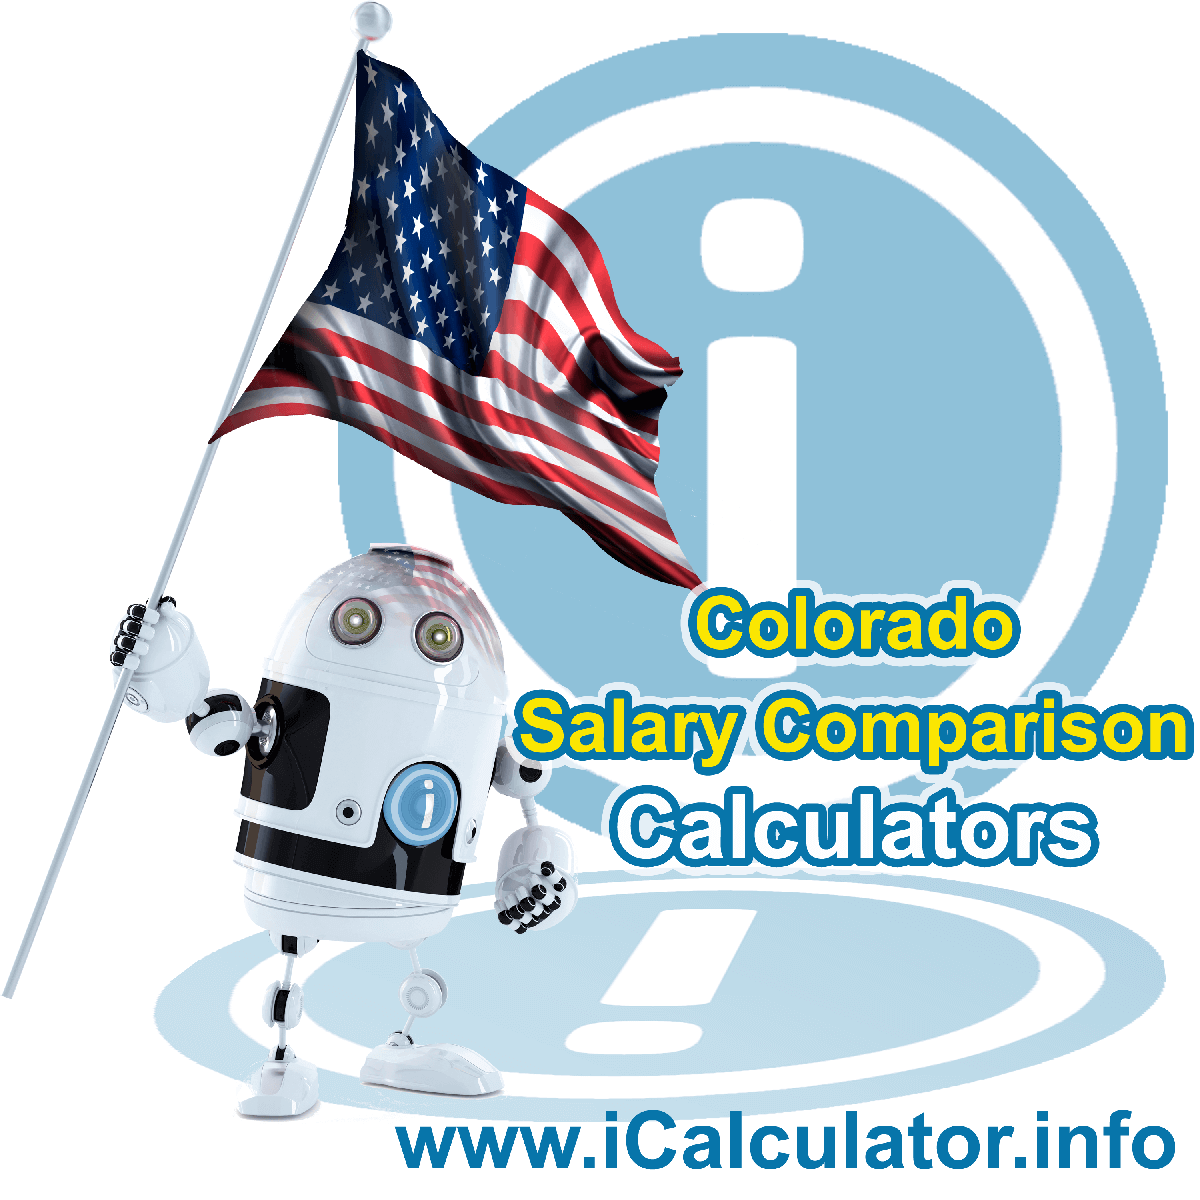 Colorado Salary Comparison Calculator 2021 | iCalculator™ | The Colorado Salary Comparison Calculator allows you to quickly calculate and compare upto 6 salaries in Colorado or between other states for the 2021 tax year and historical tax years. Its an excellent tool for jobseekers, pay raise comparison and comparison of salaries between different US States